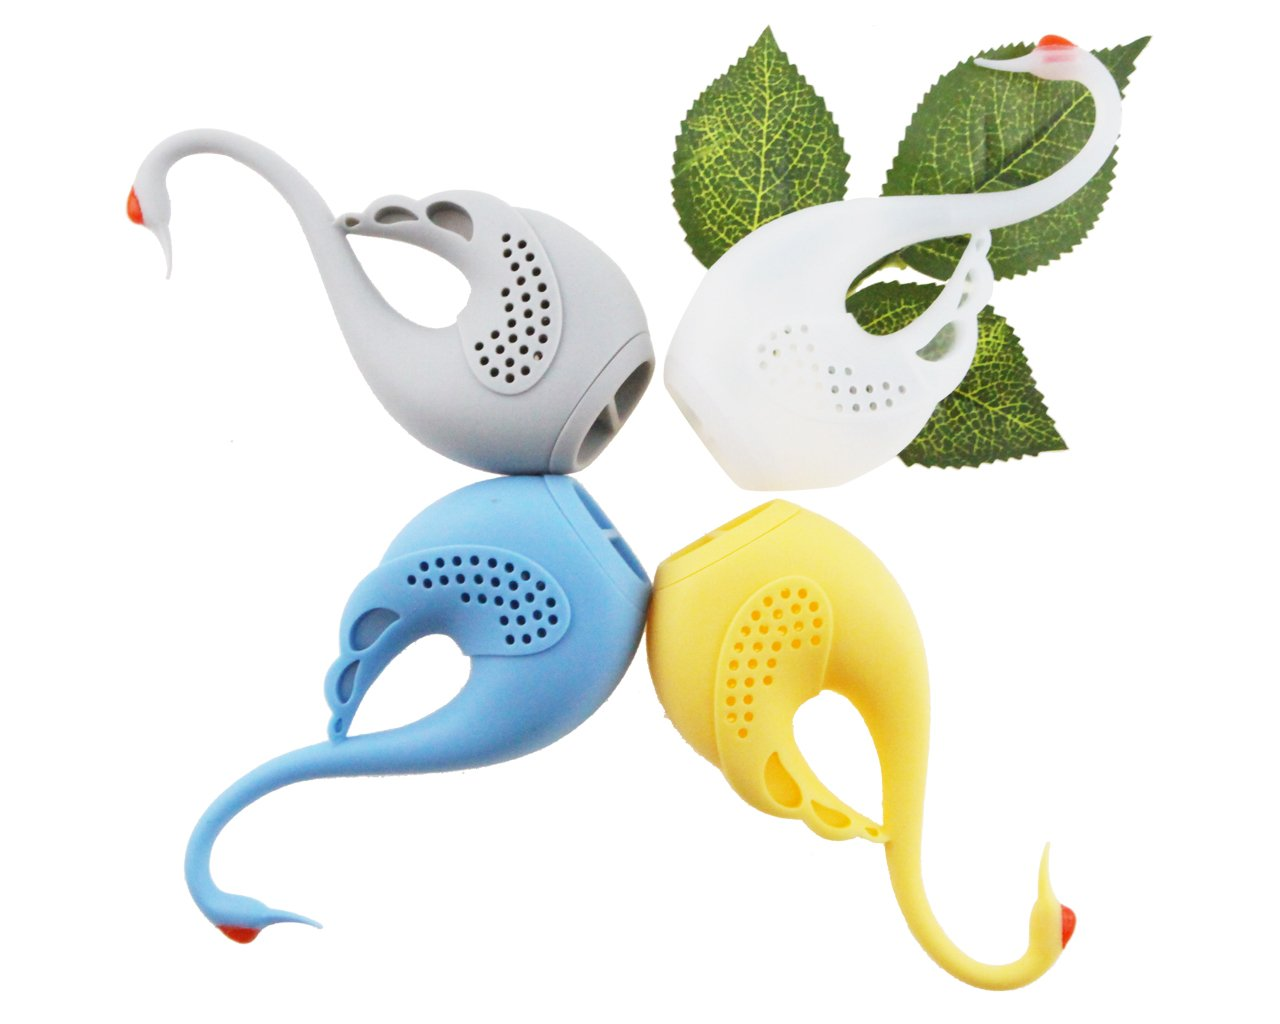 Set of 4 Cute Animal Eco-friendly Swan Tea Infuser Reusable BPA-Free Silicone Strainer With Yellow Blue Gray White Tea Lover/'s Gift